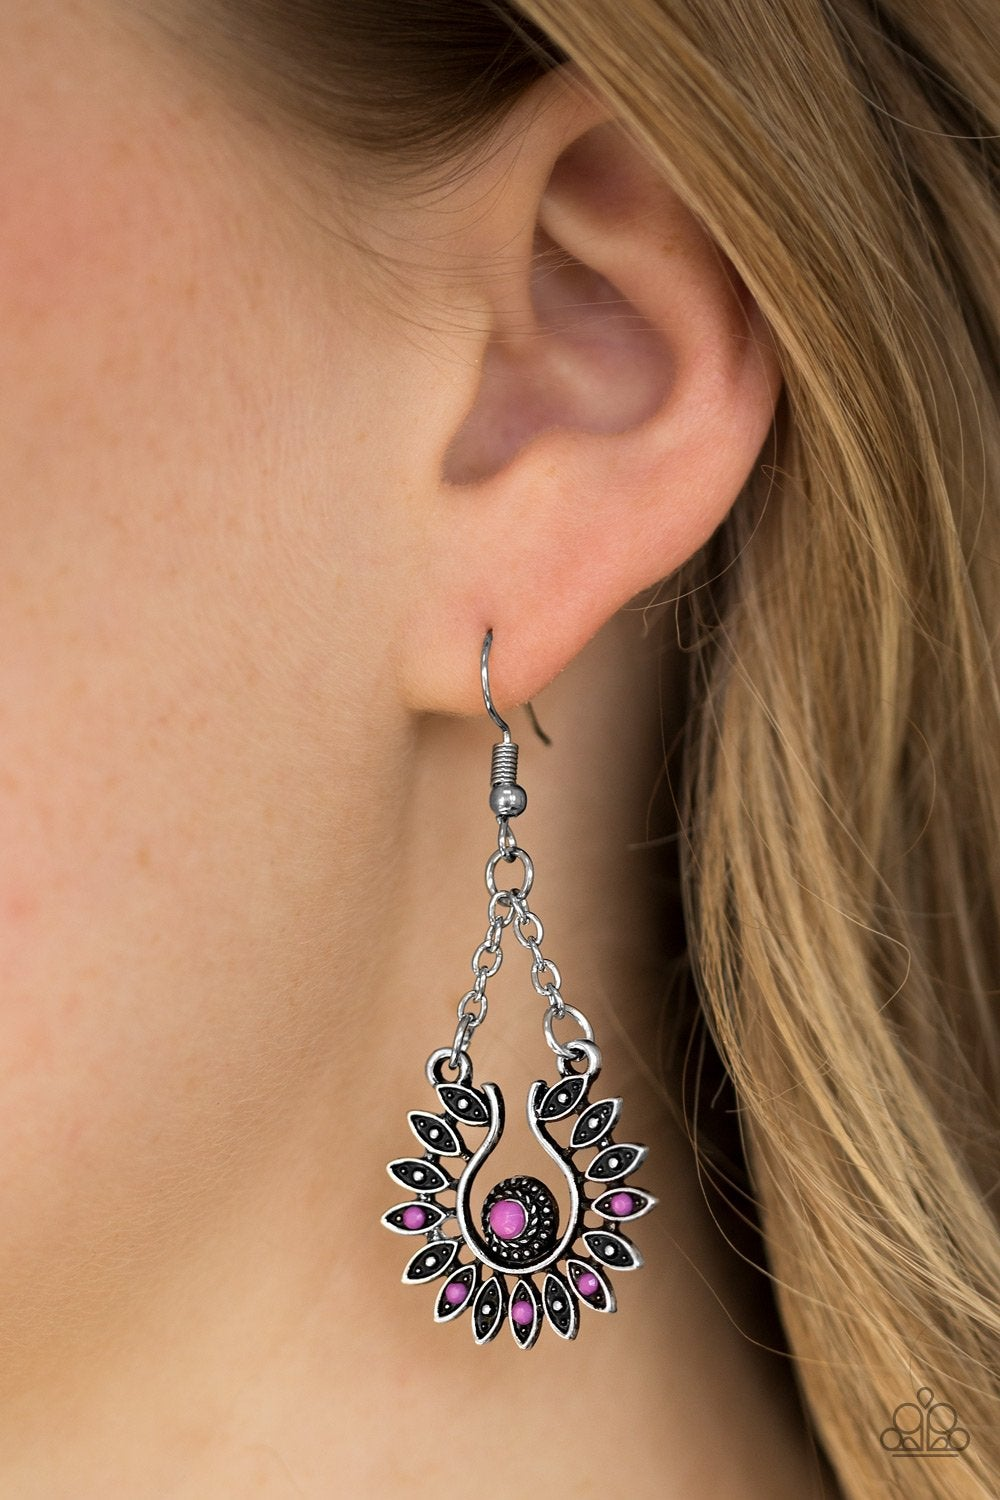 Paparazzi silver and purple earrings